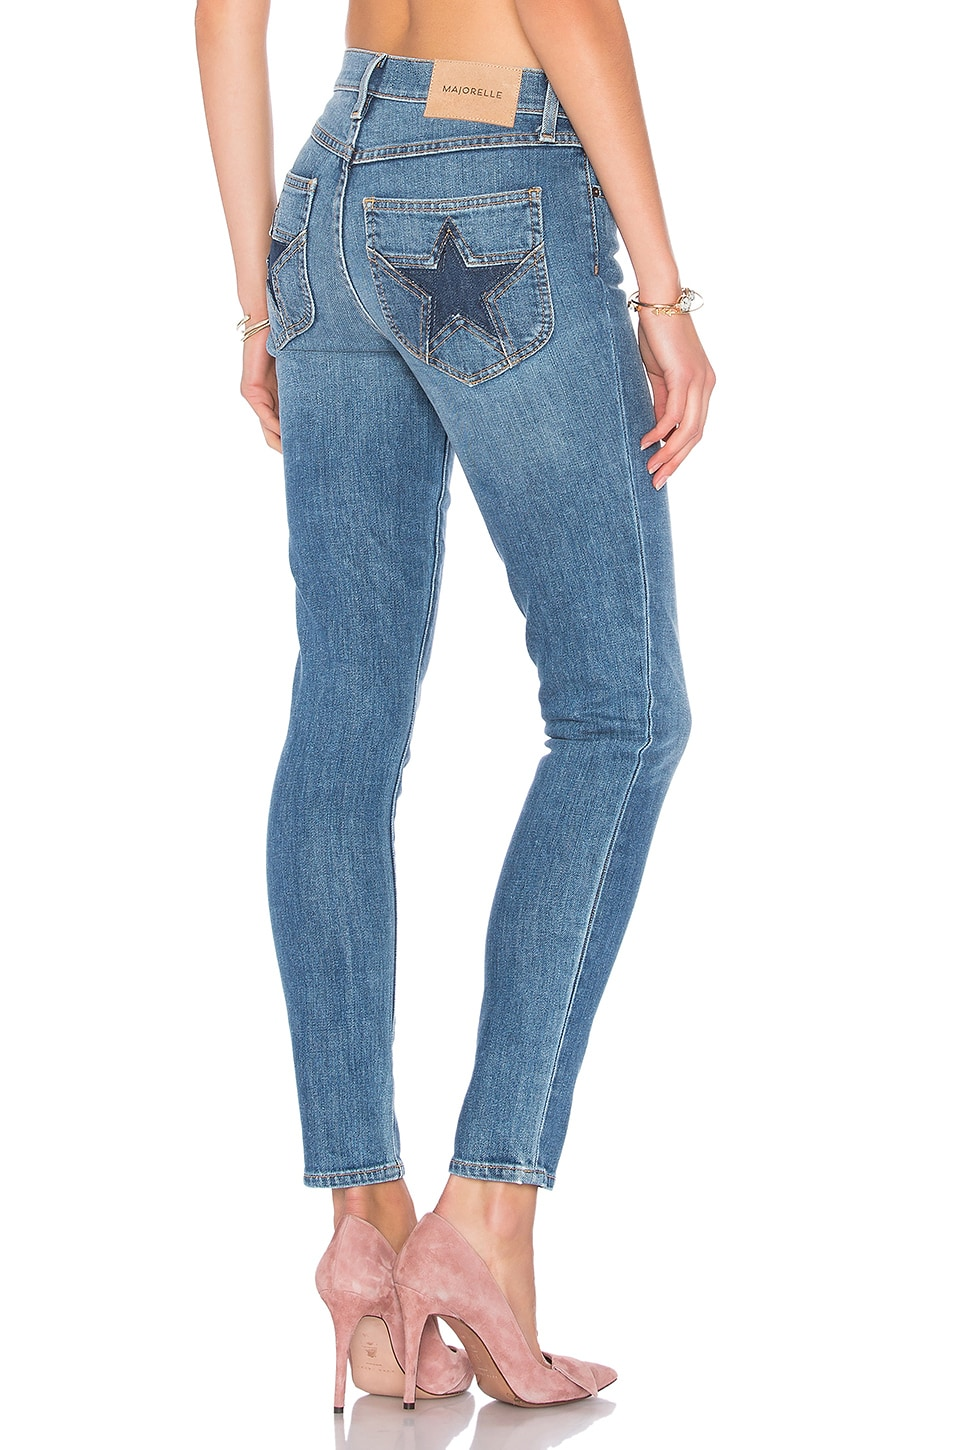 MAJORELLE Bowie Jeans in Dark Wash